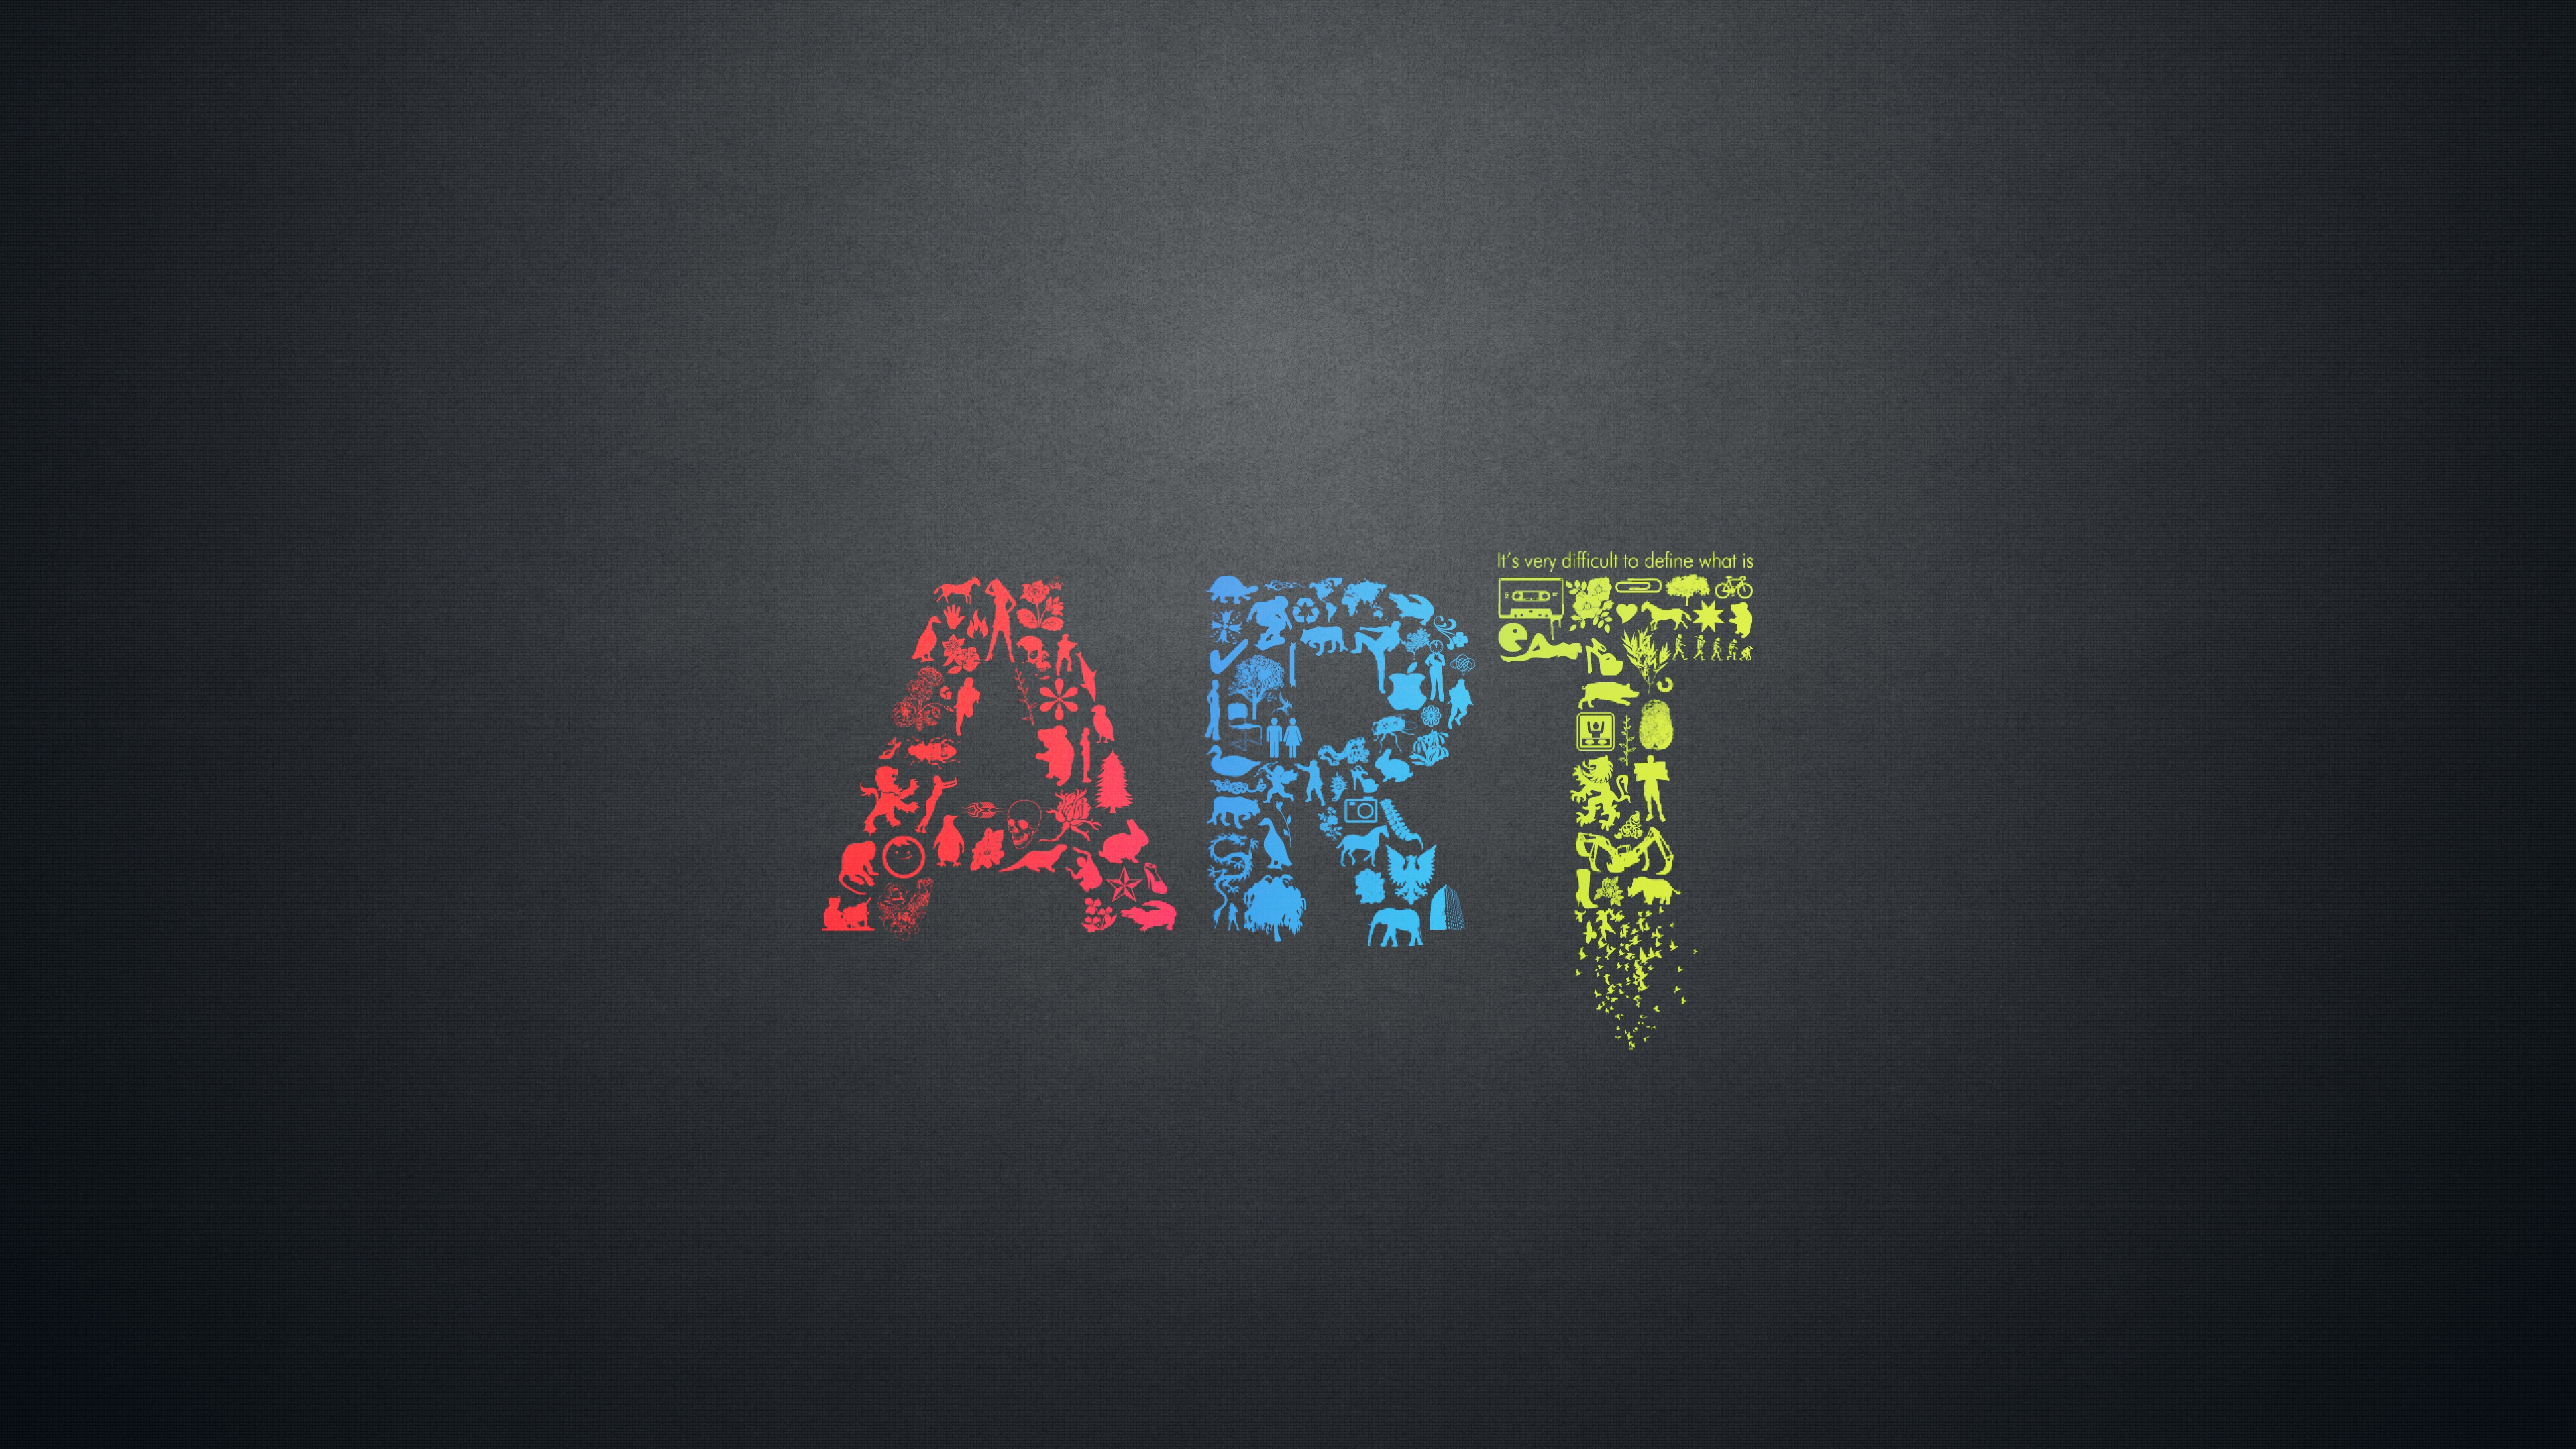 art letters creative minimalsim, hd creative, 4k wallpapers, images